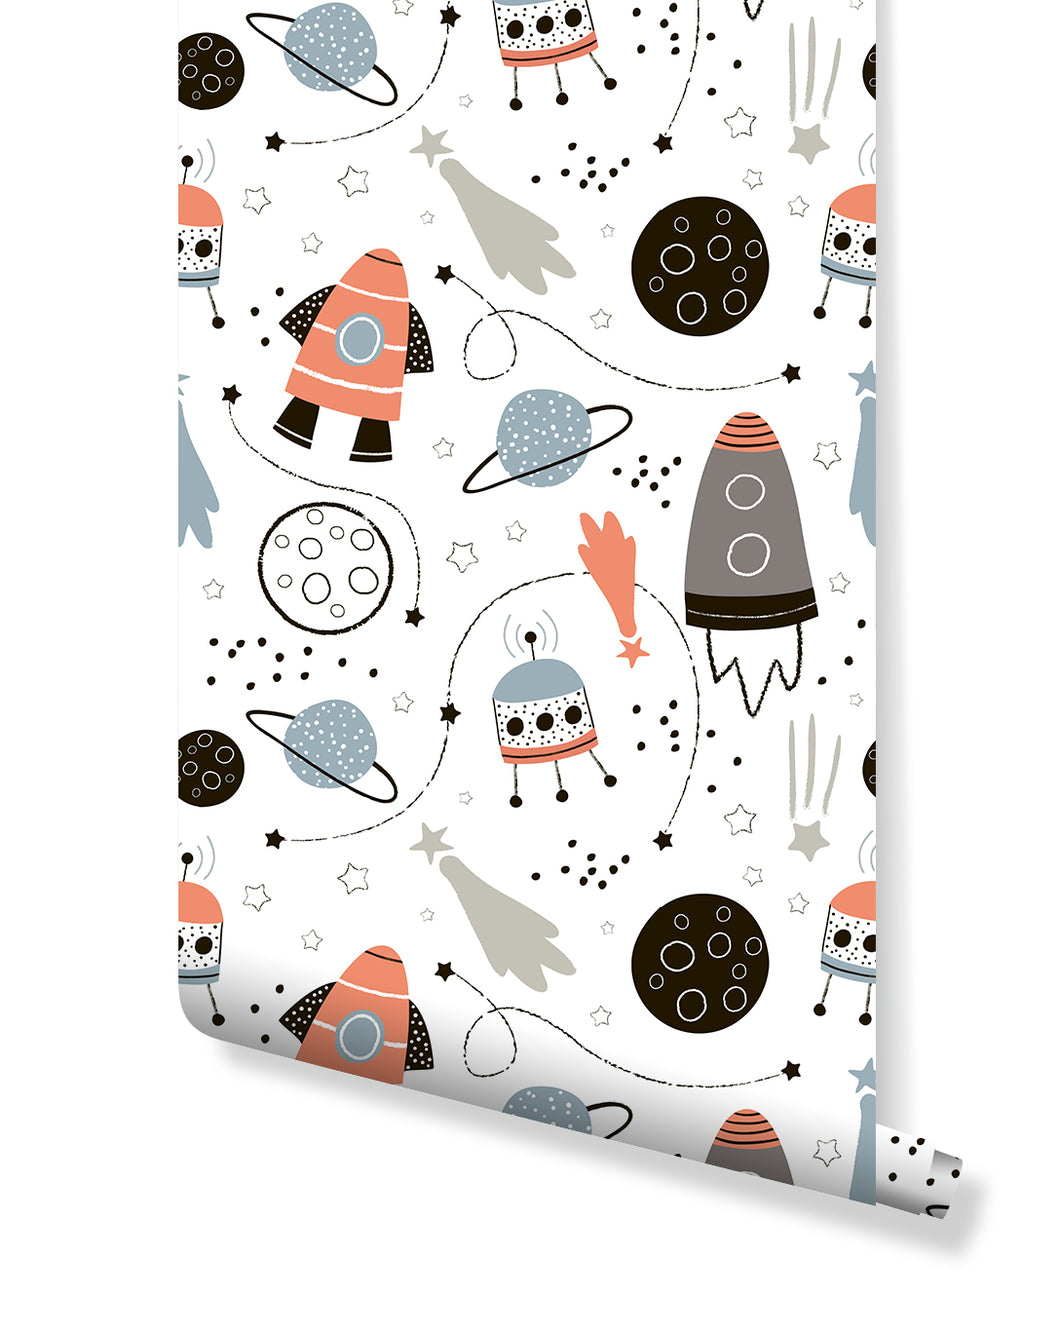 image 0  image 1  image 2  image 3  Request a custom order and have something made just for you.  This seller usually responds within 24 hours. Trendy Kids Room Self Adhesive Removable Wallpaper with Hand Drawn Space Elements, Space Rockets, Stars, Planets in Pastel Colors CC187